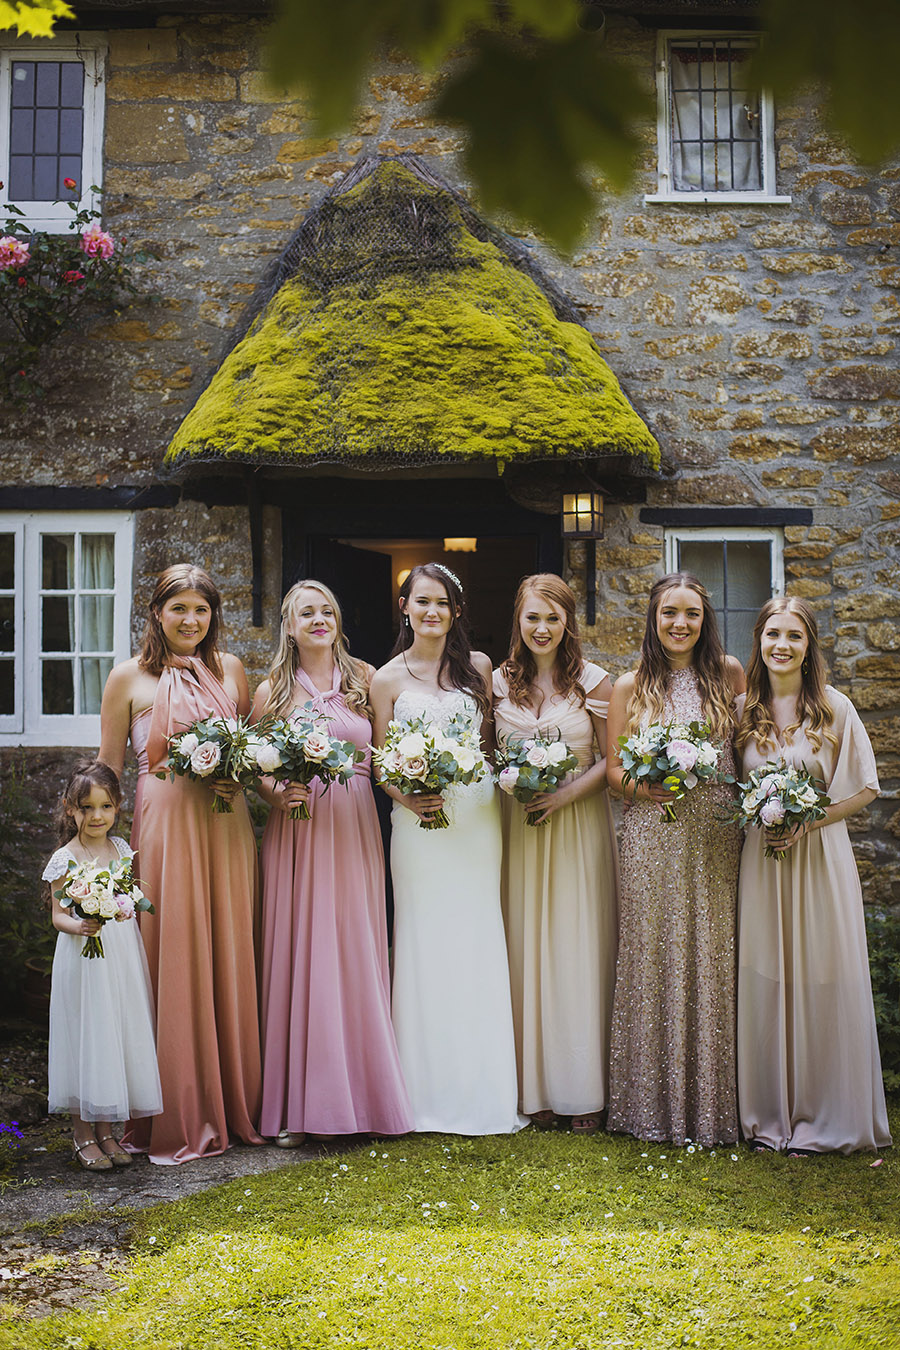 Relaxed outdoor wedding at Cott Farm Barn with images by Heather Birnie Photography on the English Wedding Blog (8)